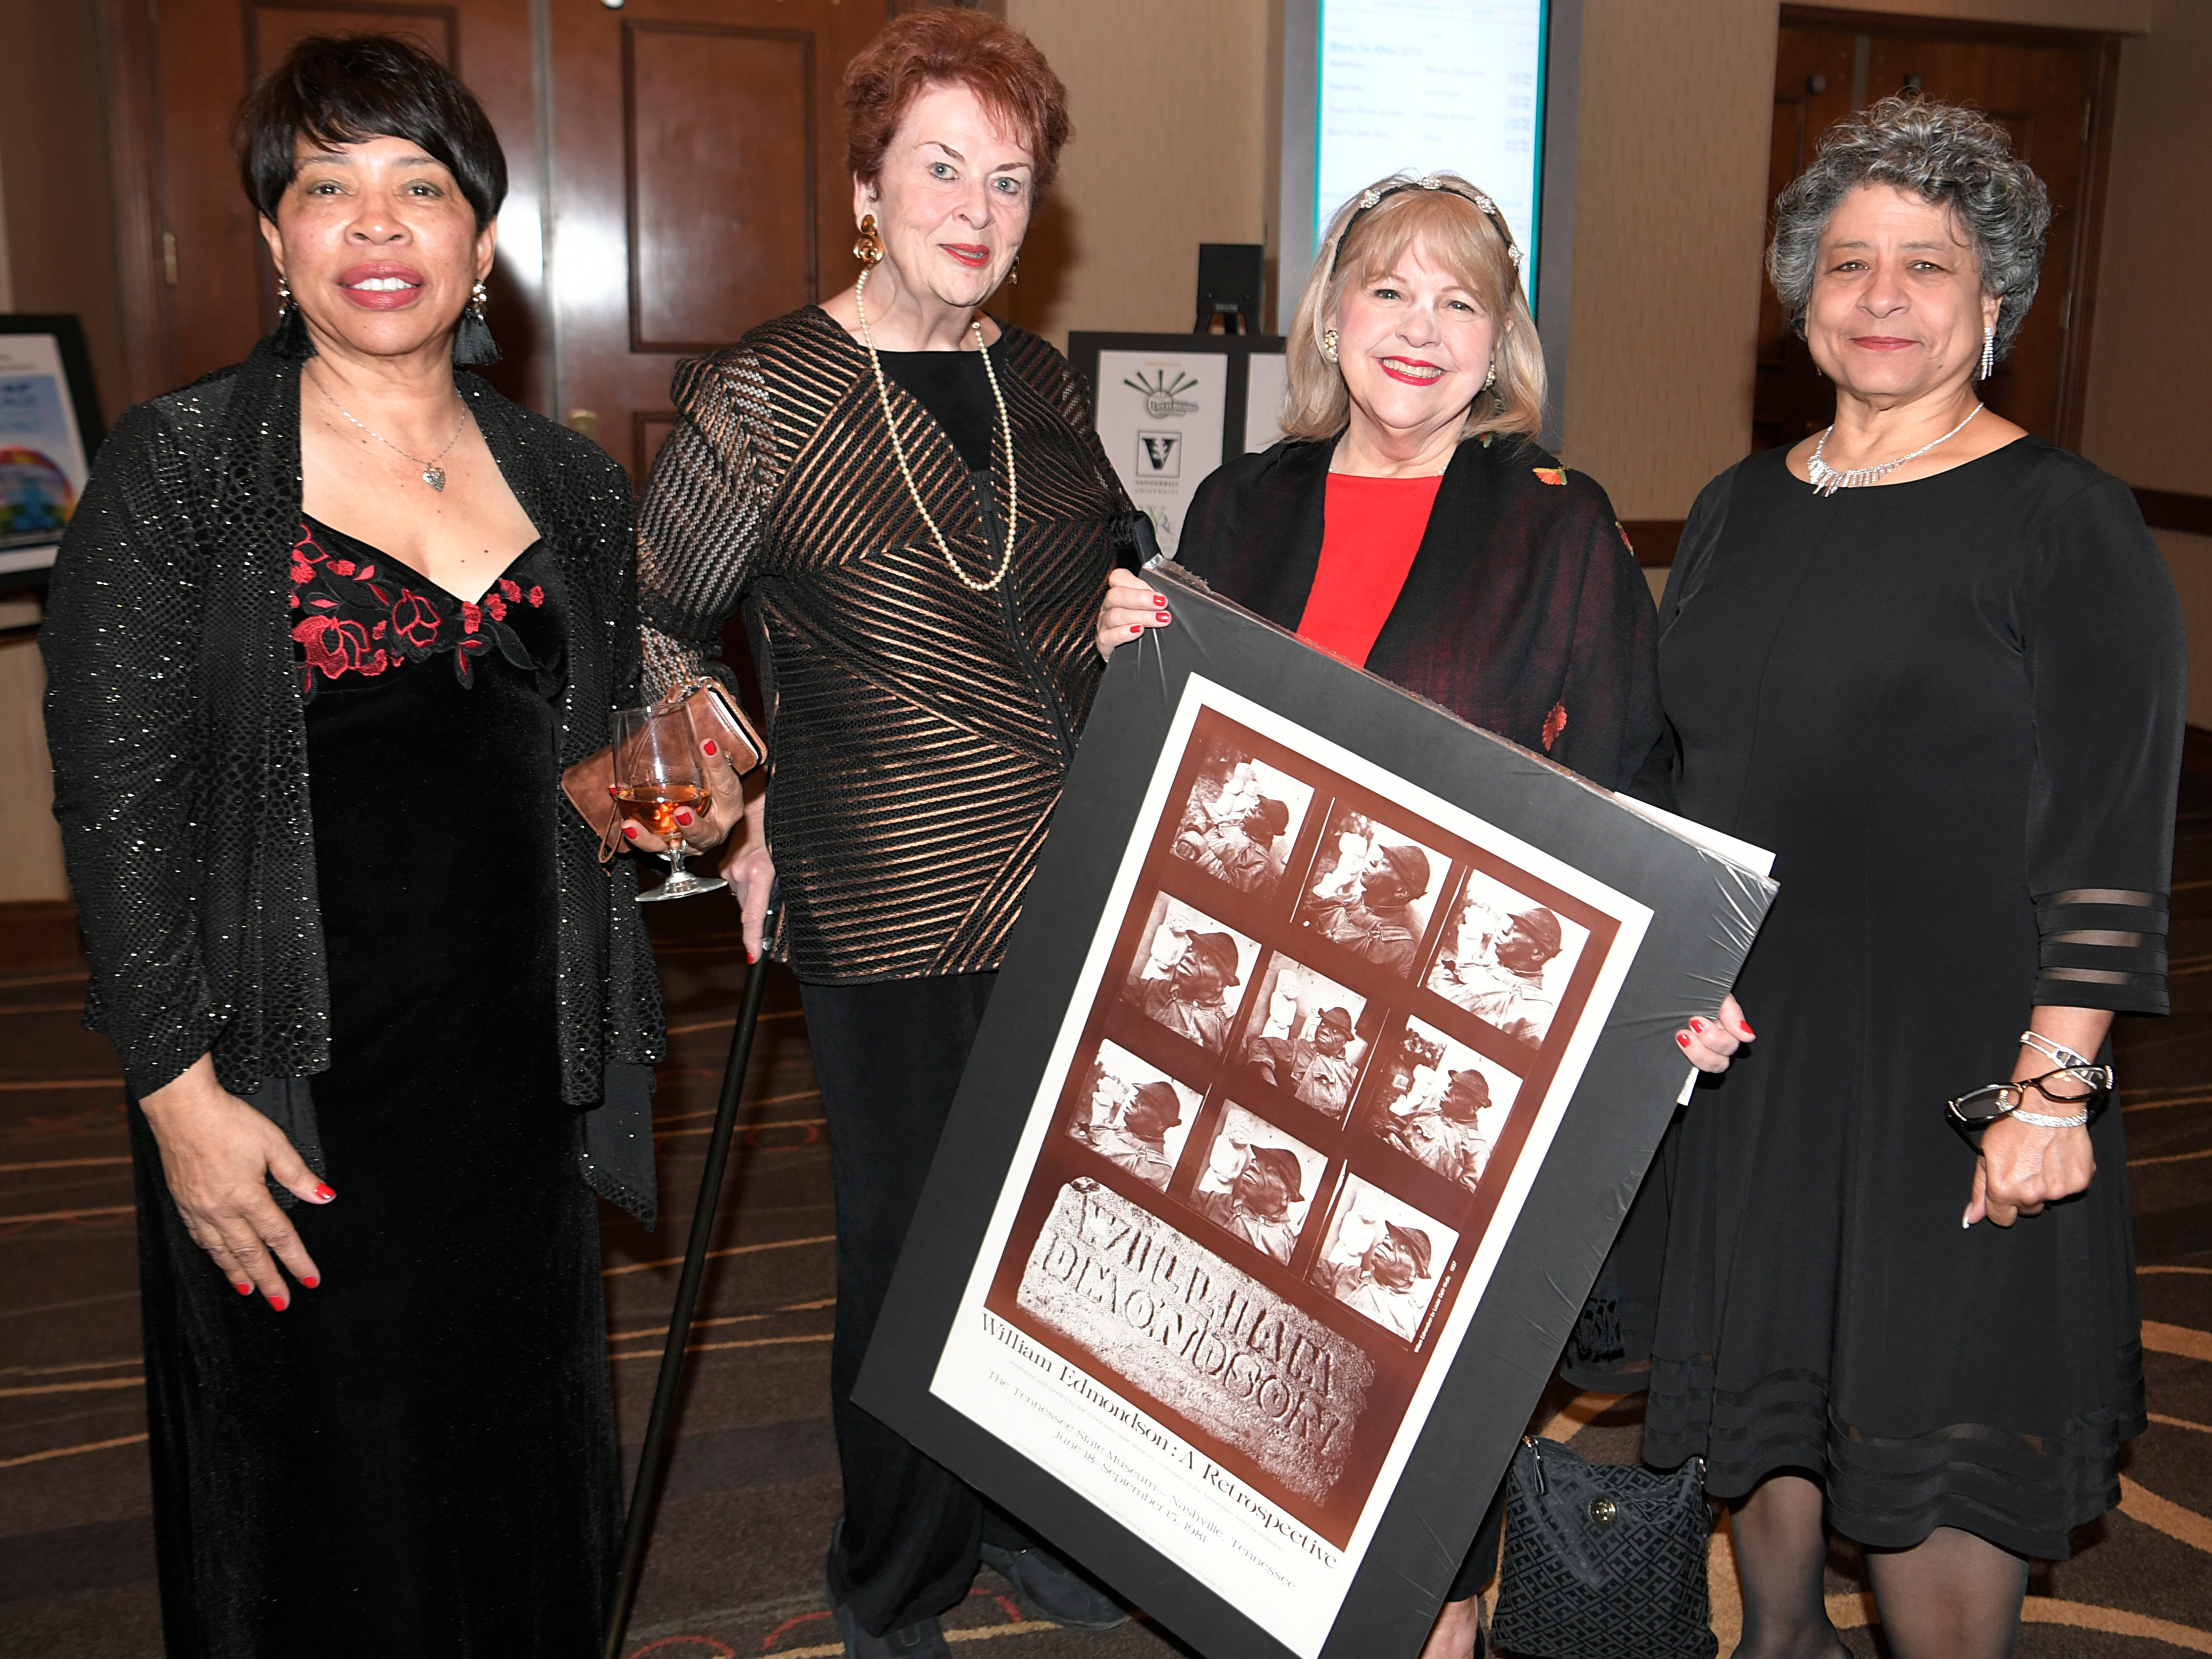 Pearl Bransford, Cornelia Holland, Mary Pearce and Deborah Murdic at the African American Heritage Society's 18th Annual Black Tie Affair at the Embassy Suites in Franklin on Sat., Feb. 2, 2019.